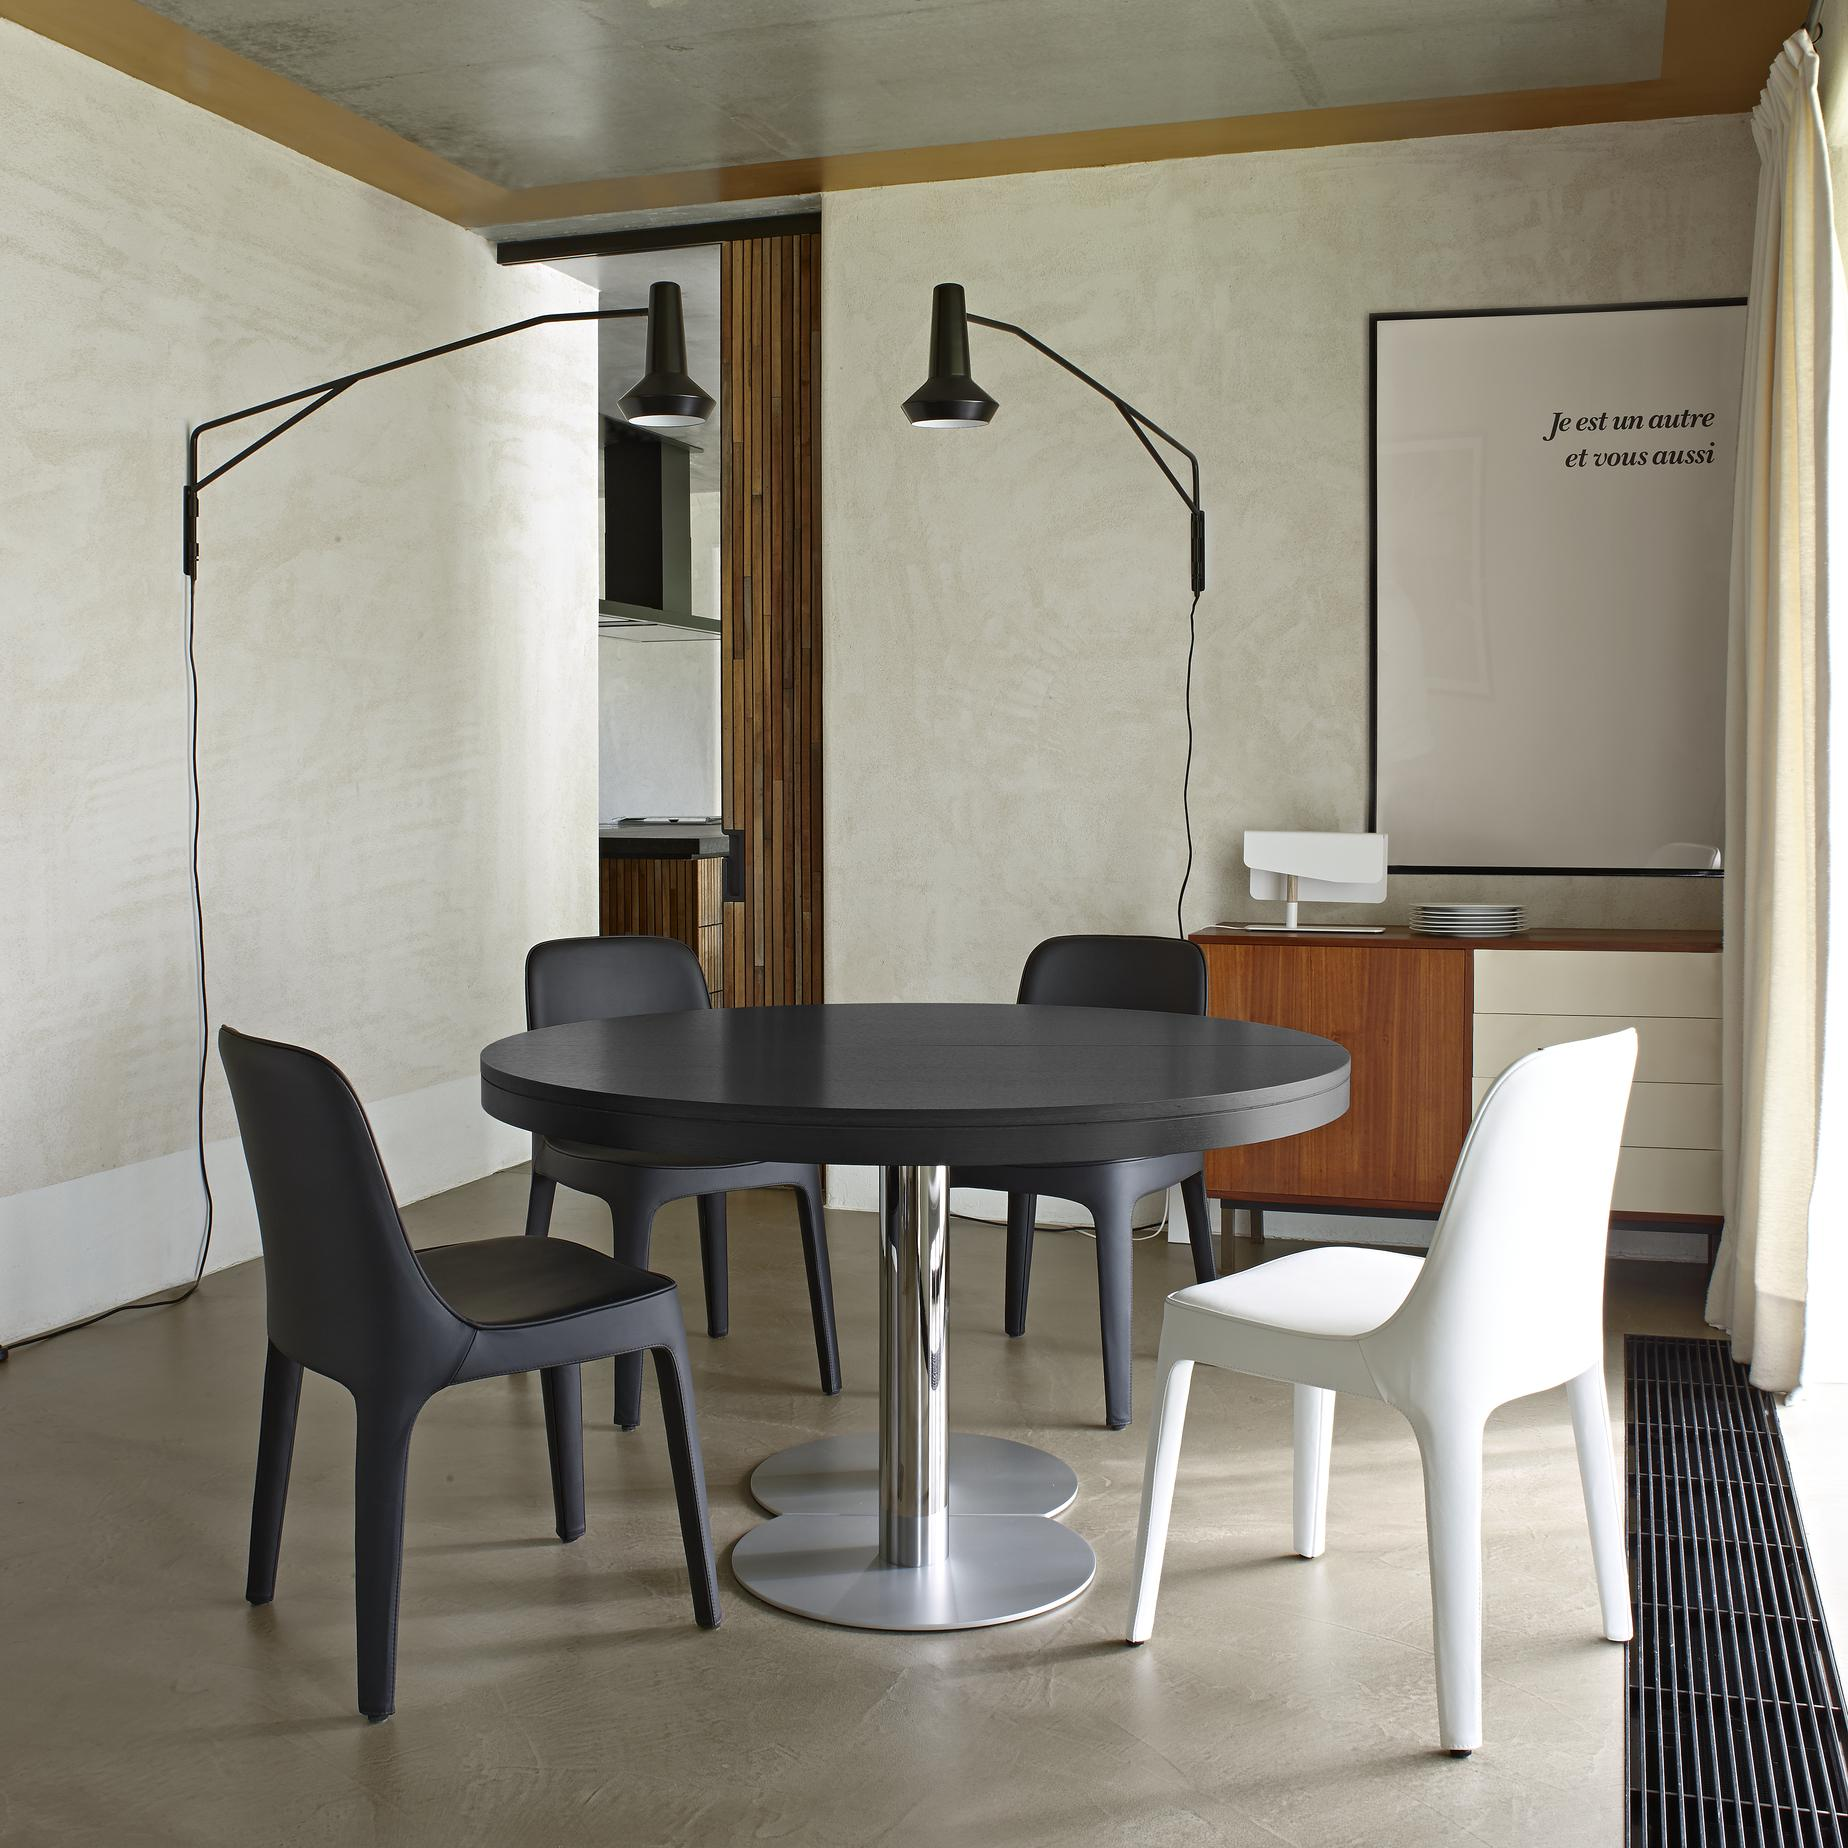 craft 2 tables from designer delo lindo ligne roset official site. Black Bedroom Furniture Sets. Home Design Ideas